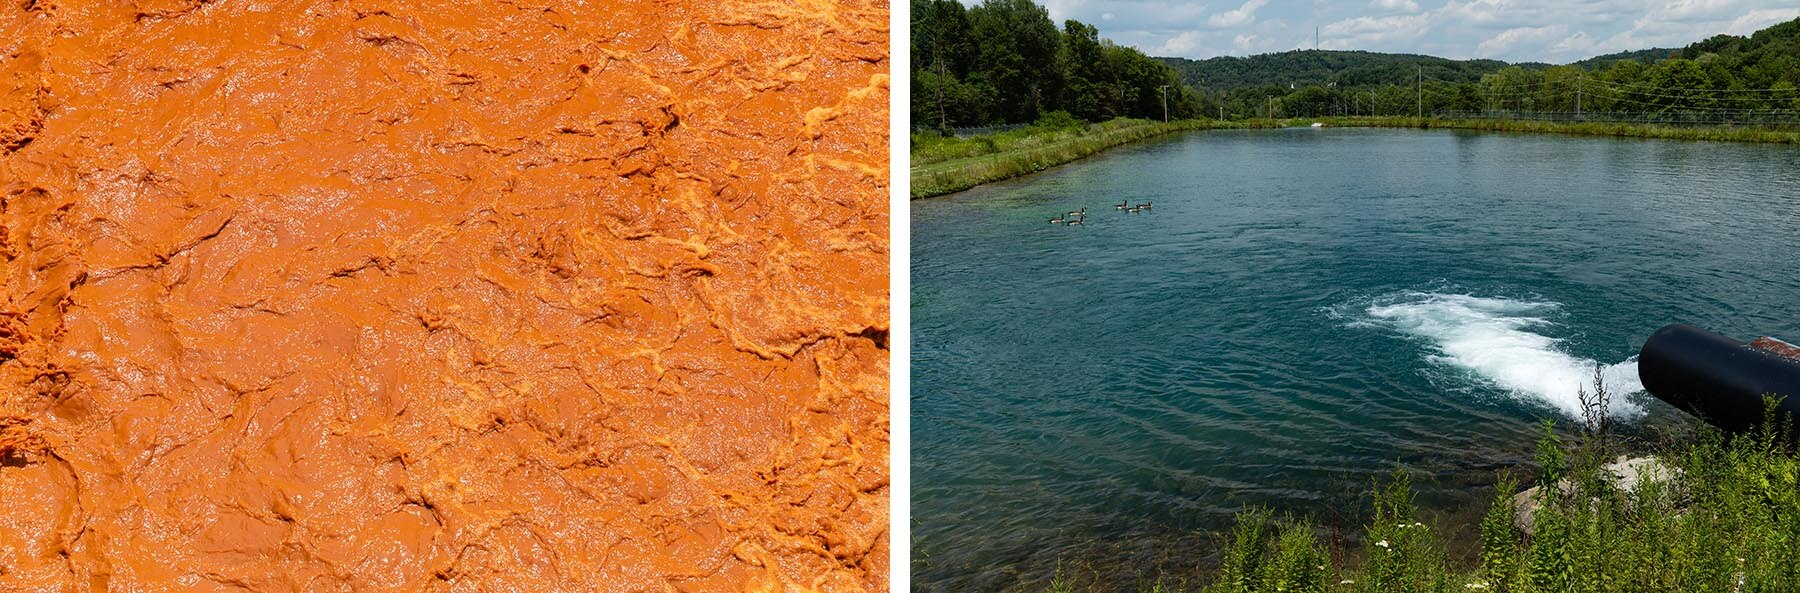 LEFT: Untreated water impared by acid mine drainage. RIGHT: Water after its been treated by the Lancashire plant. (Photo by Ethan Weston/Chesapeake Bay Program)